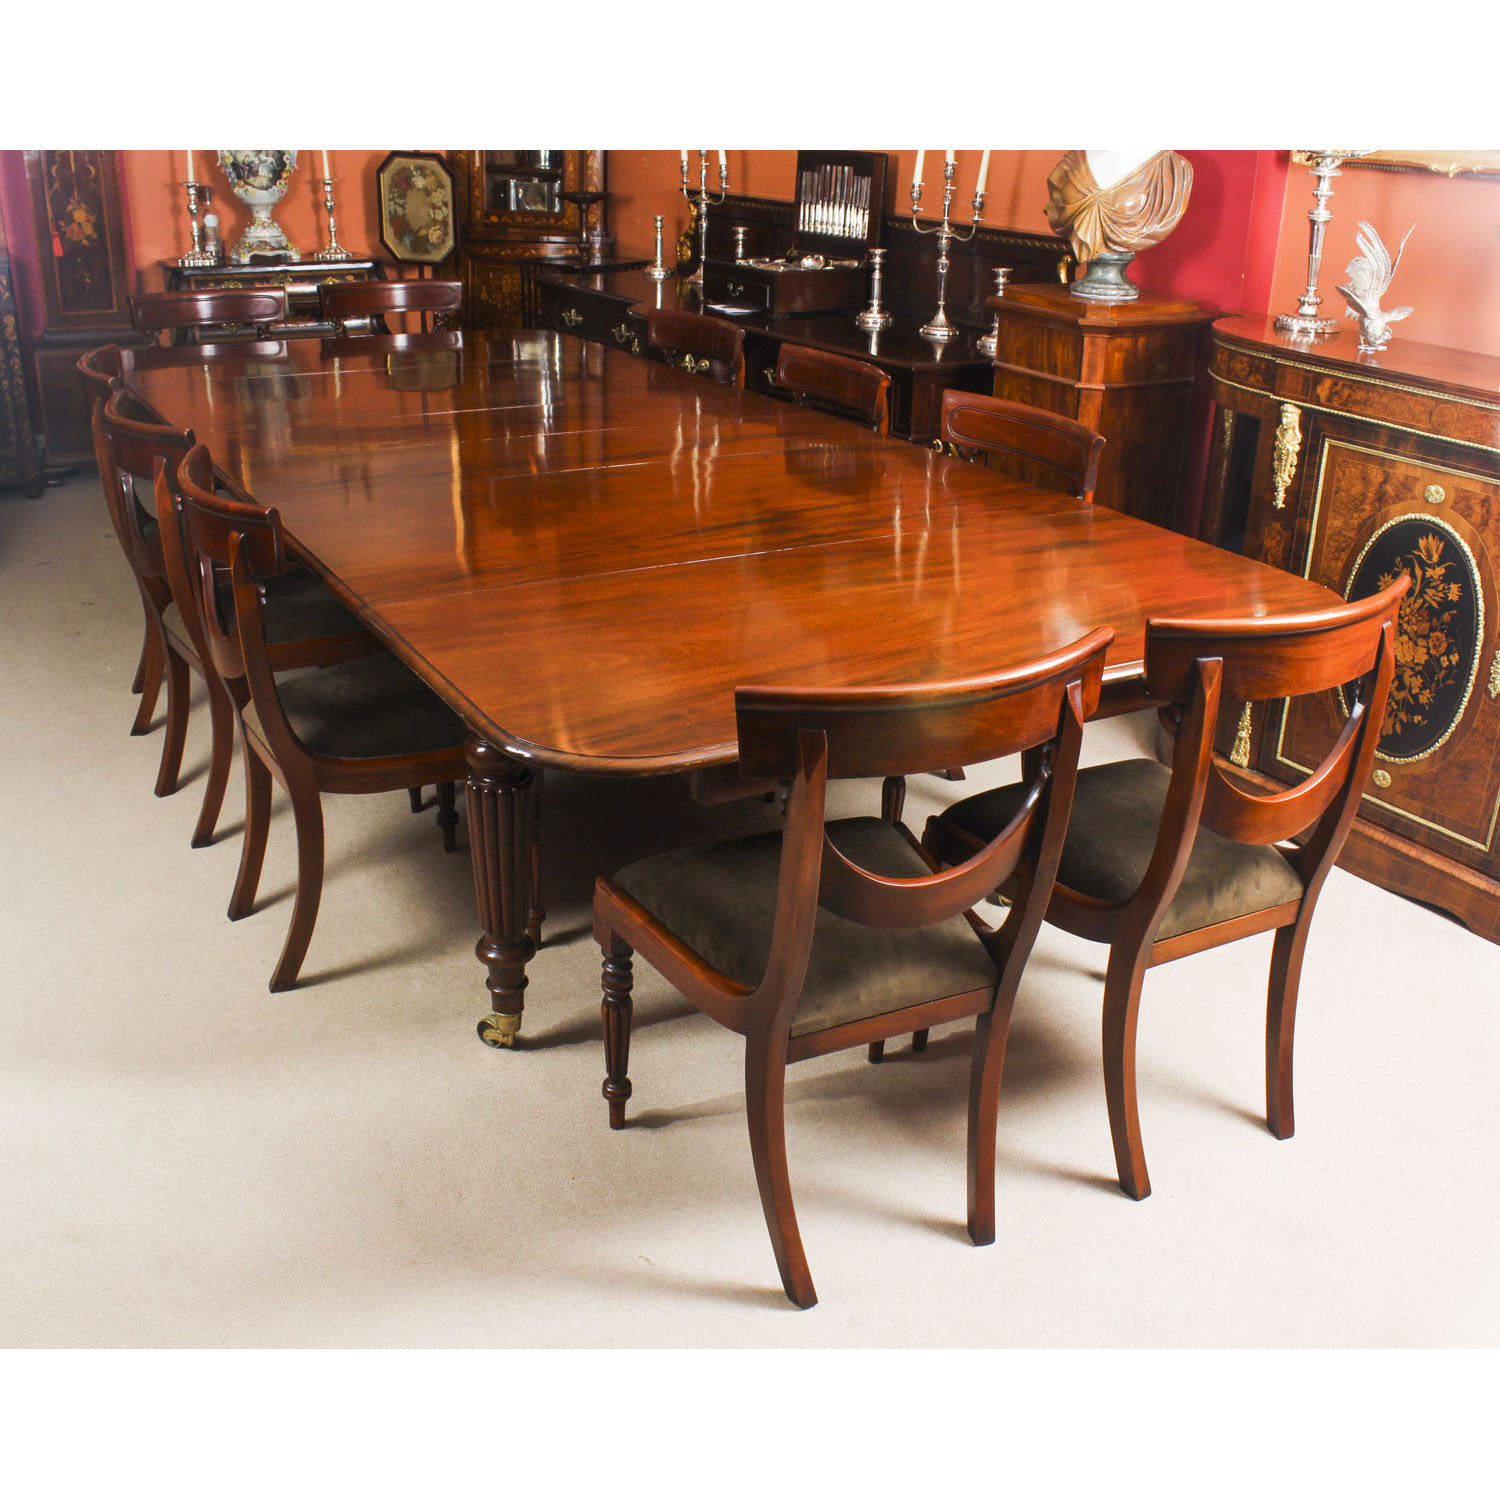 Antique Mahogany Extending Dining Table C1840 & 10 Chairs Regarding 2018 Rustic Mahogany Extending Dining Tables (View 10 of 25)